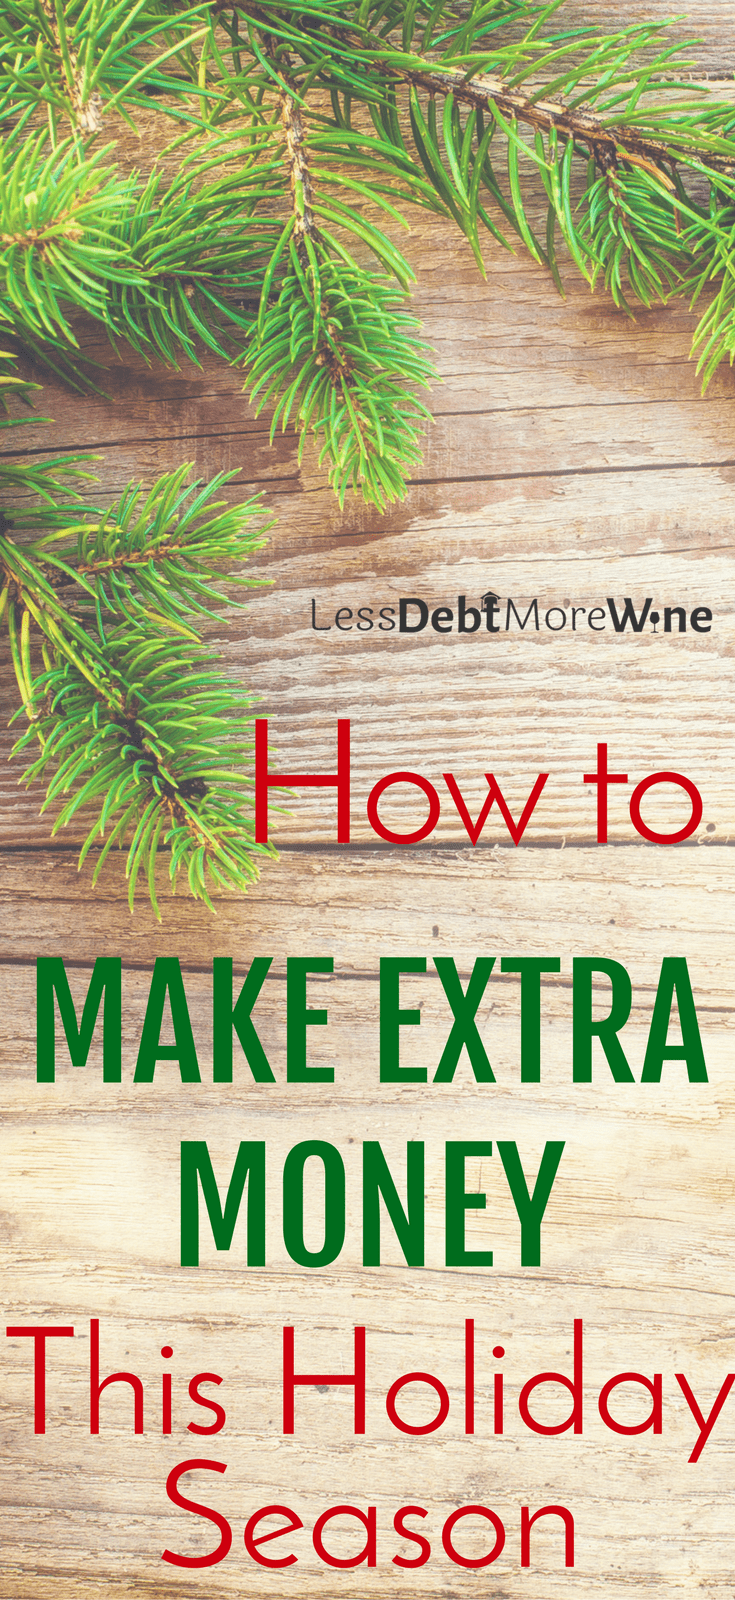 make extra money this holiday season | side hustles | earn more money for holidays